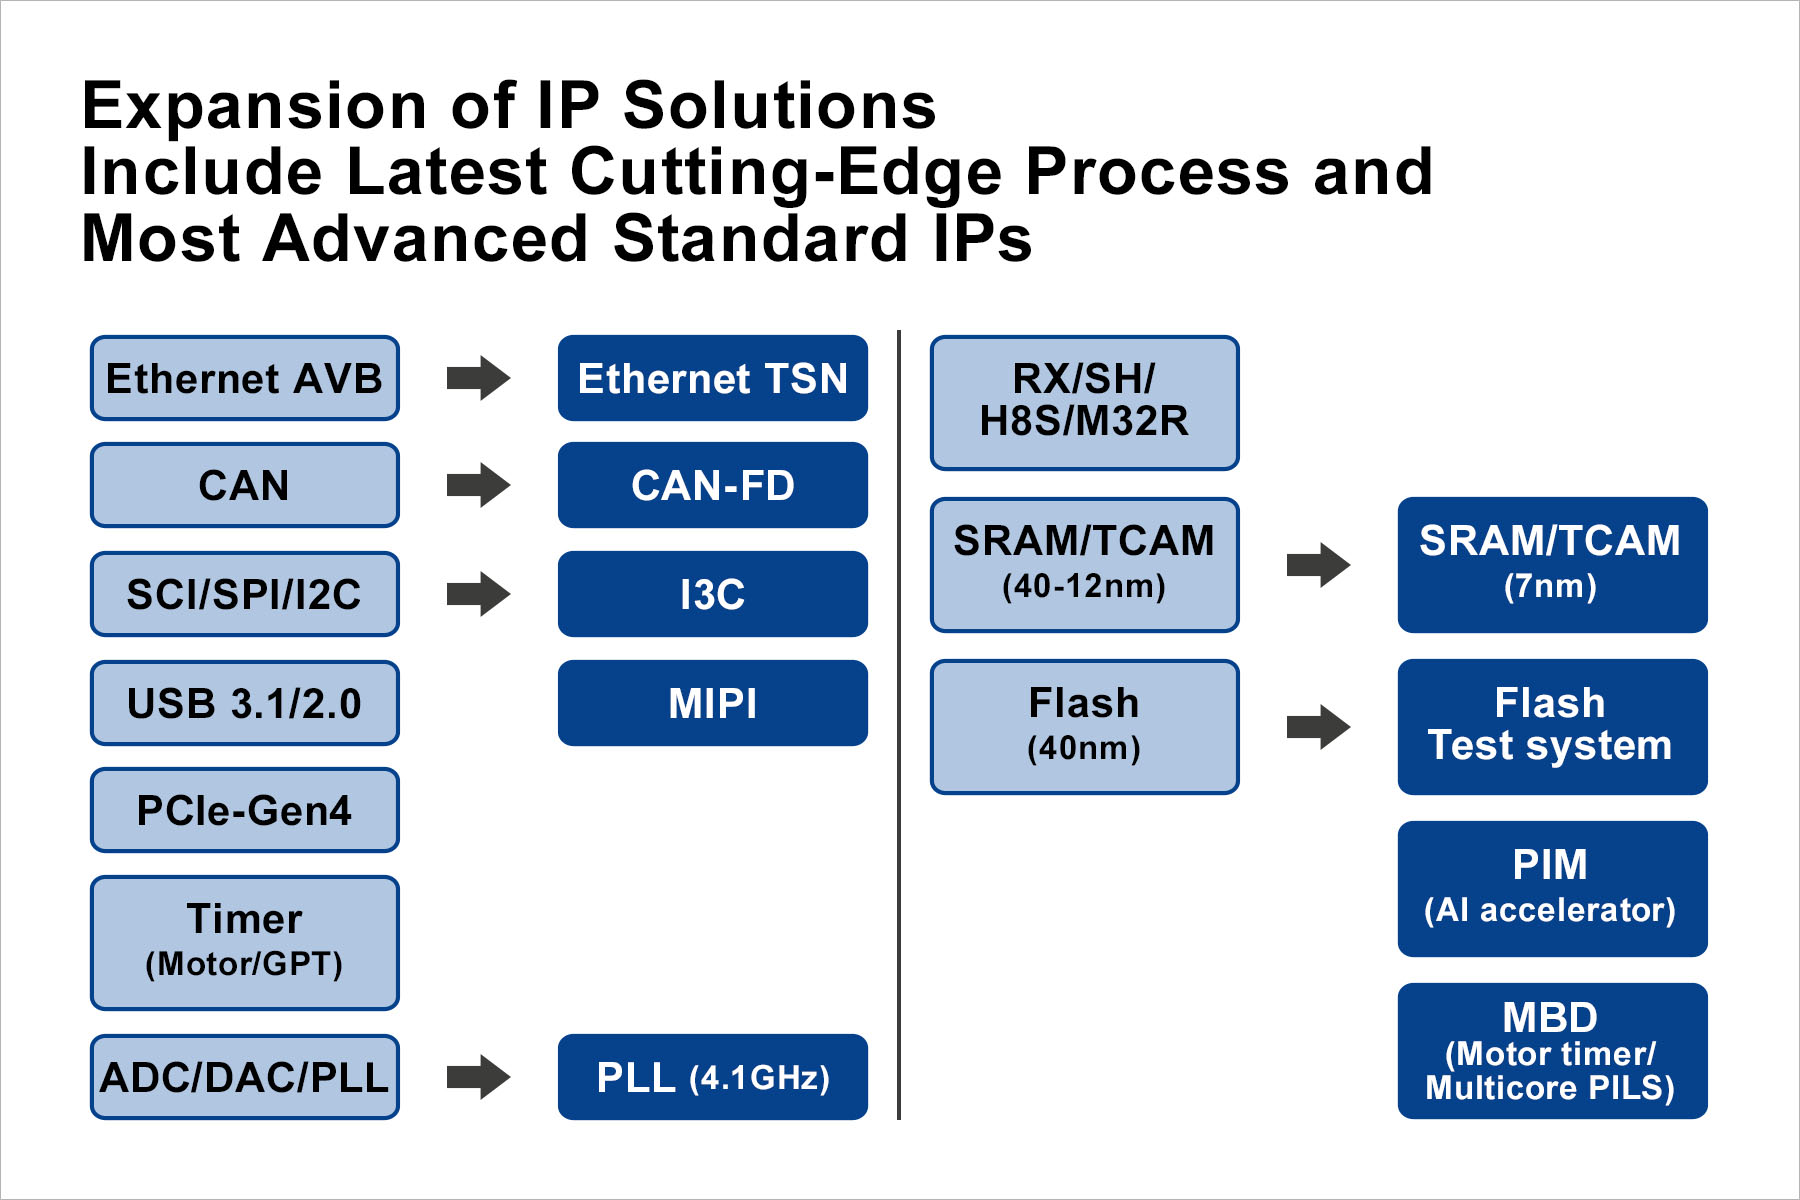 Renesas Expands Access to Portfolio of IP Licenses